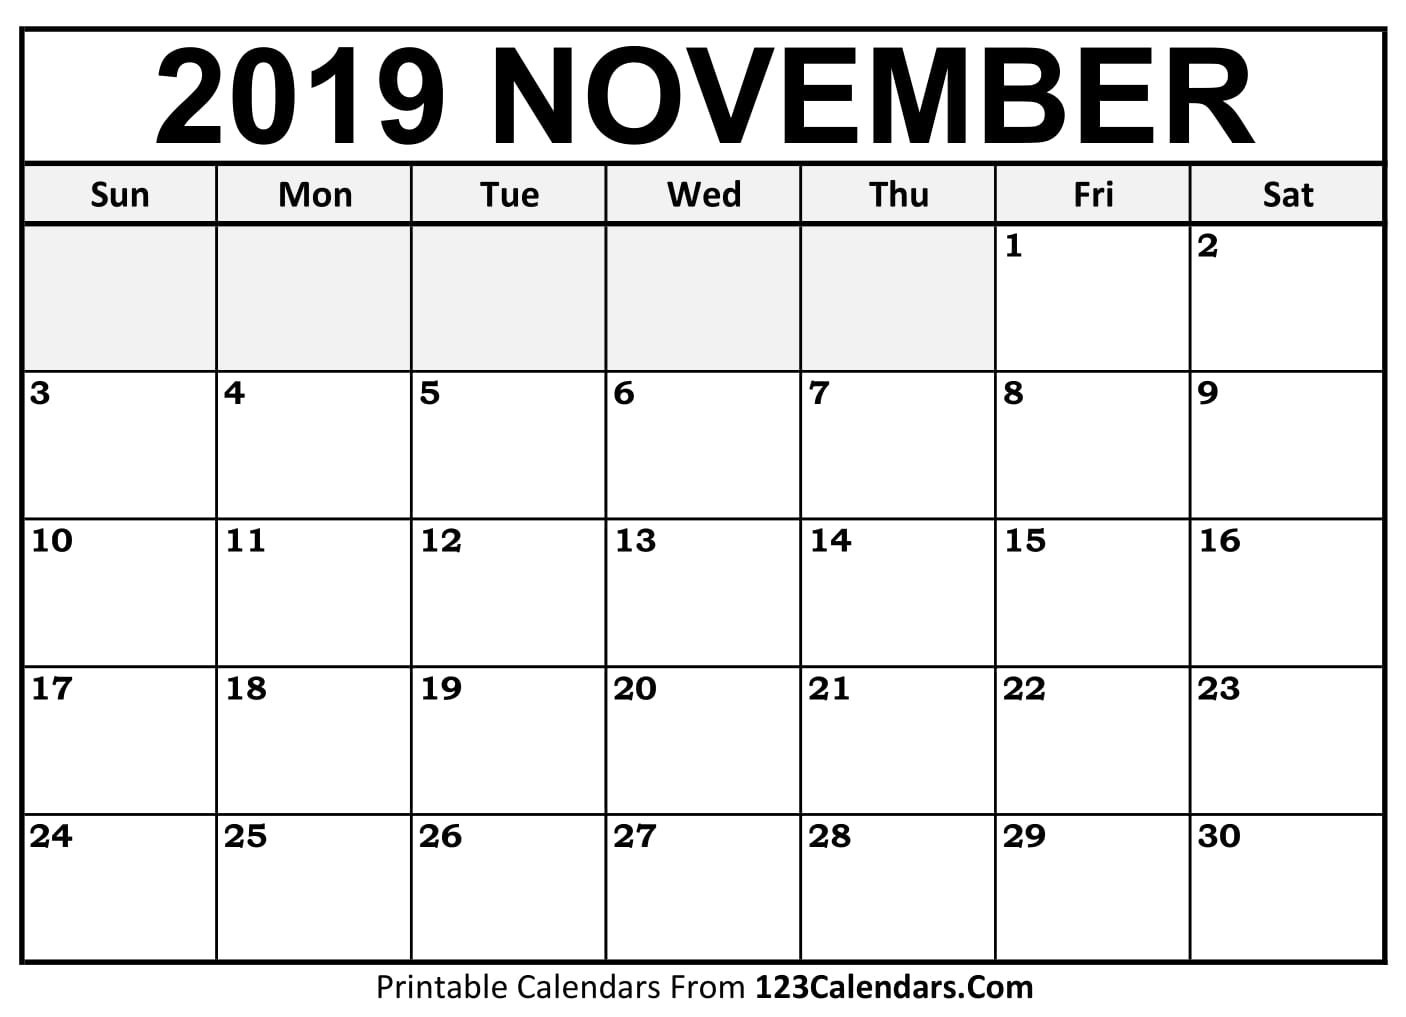 photo about Free Printable November Calendar referred to as November 2019 Printable Calendar